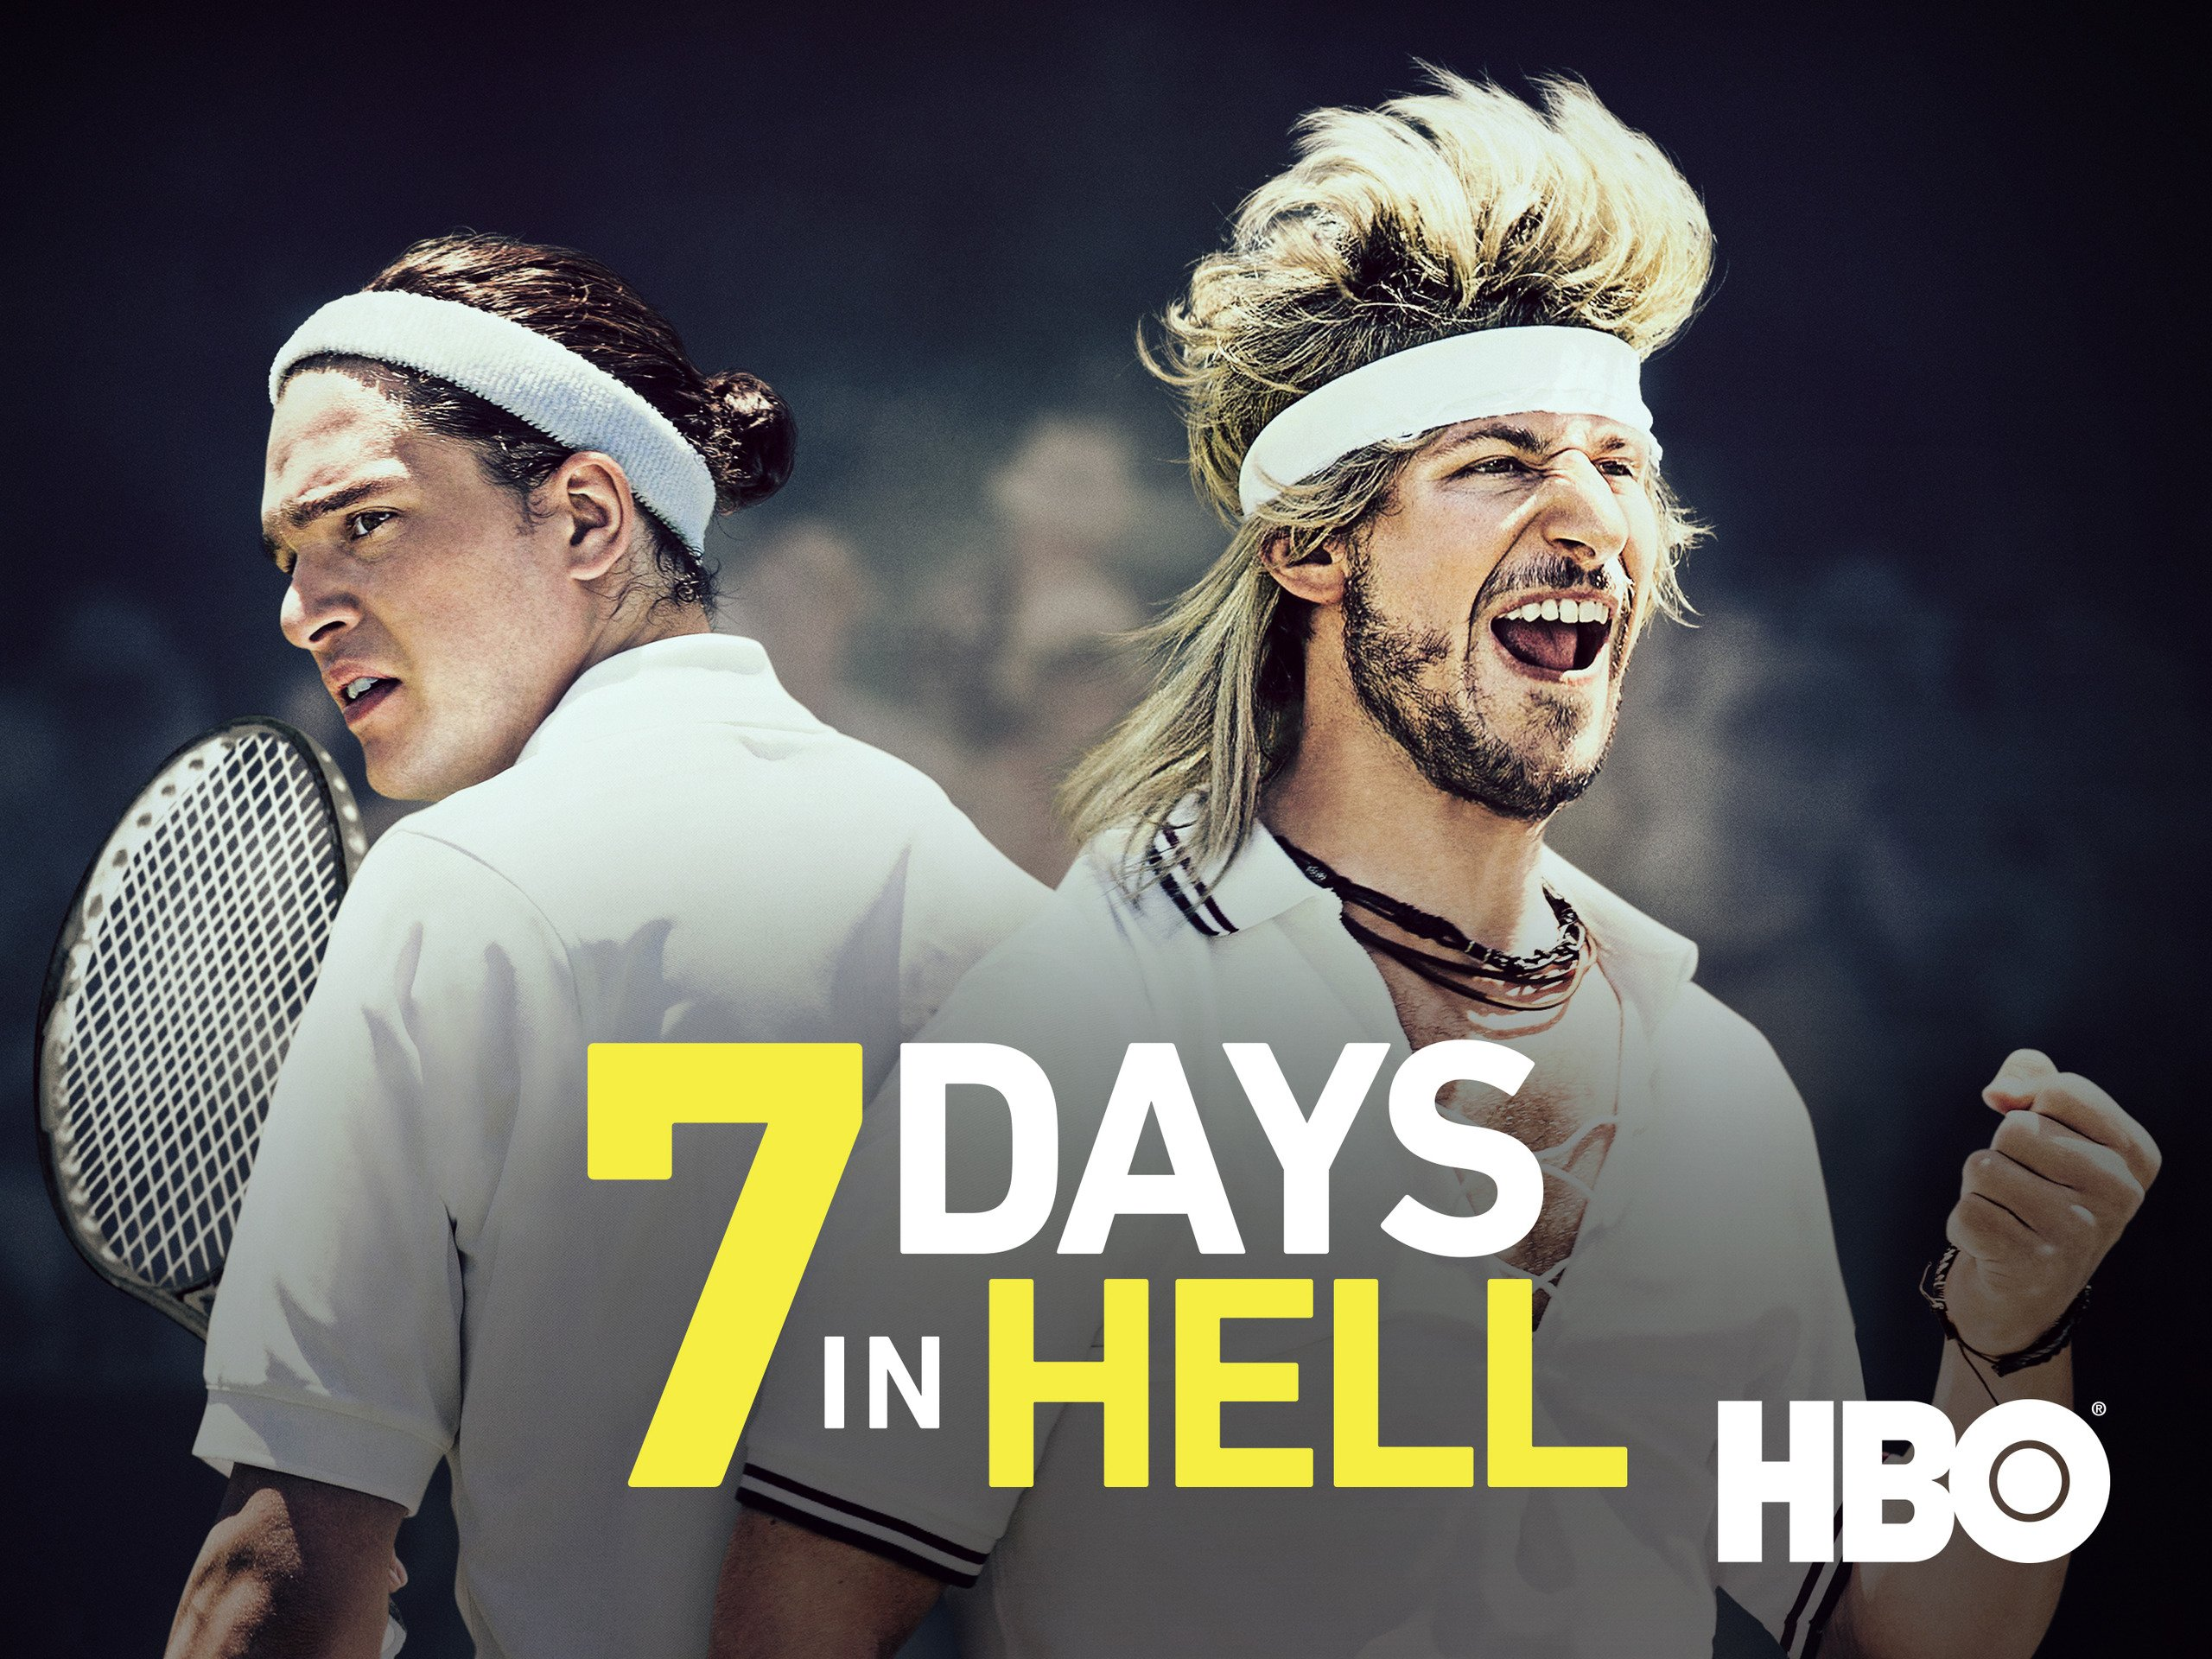 Amazon.com: Watch 7 Days in He...